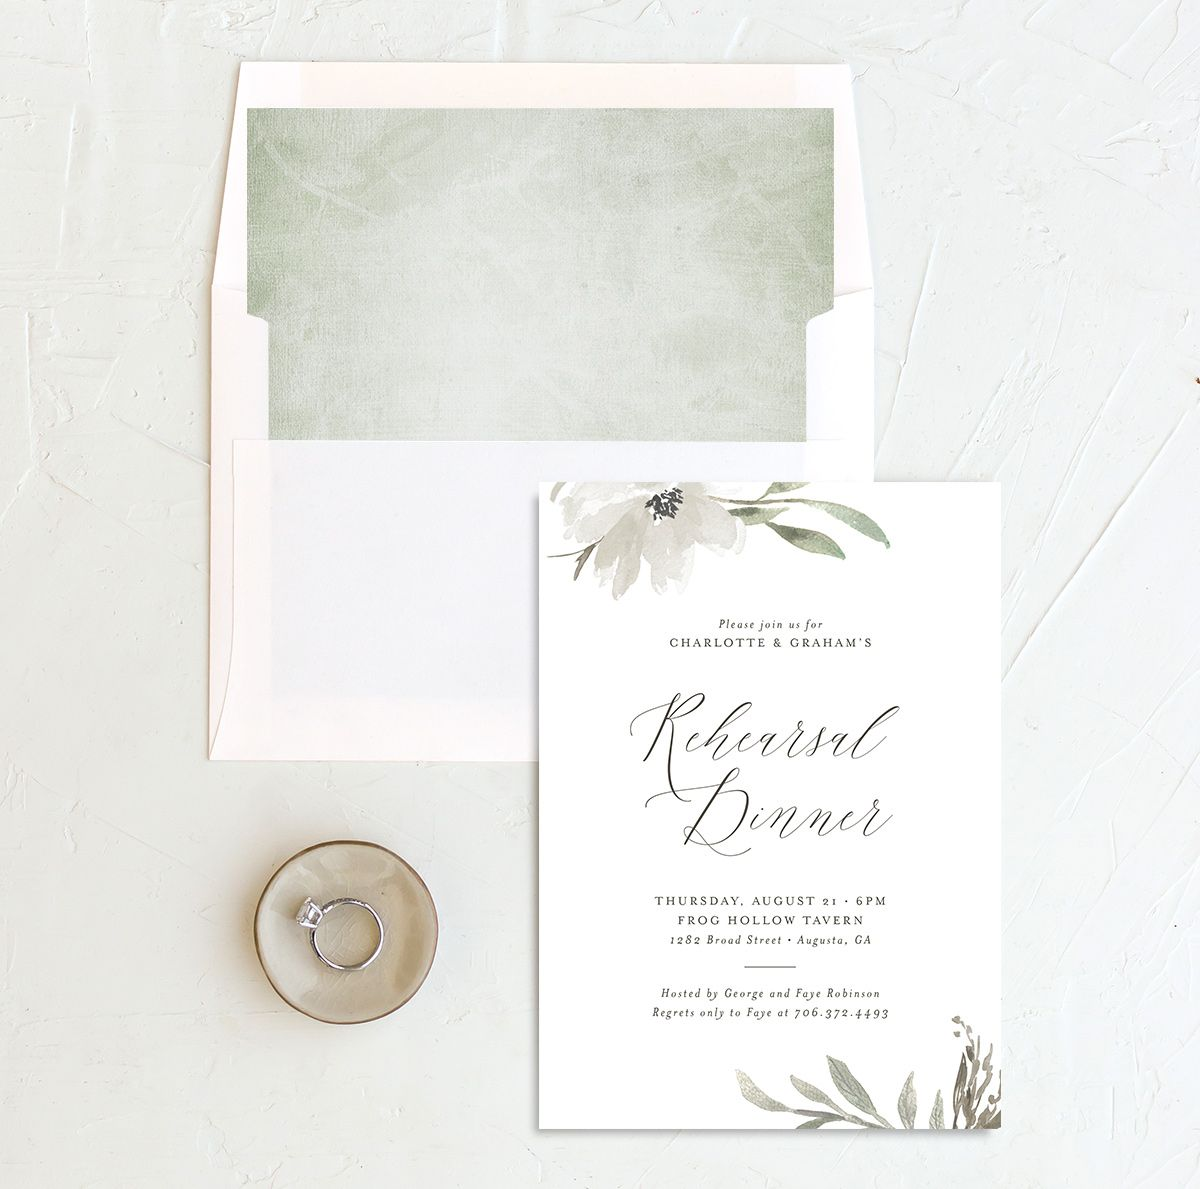 Muted floral rehearsal dinner invitations in white and envelope liner